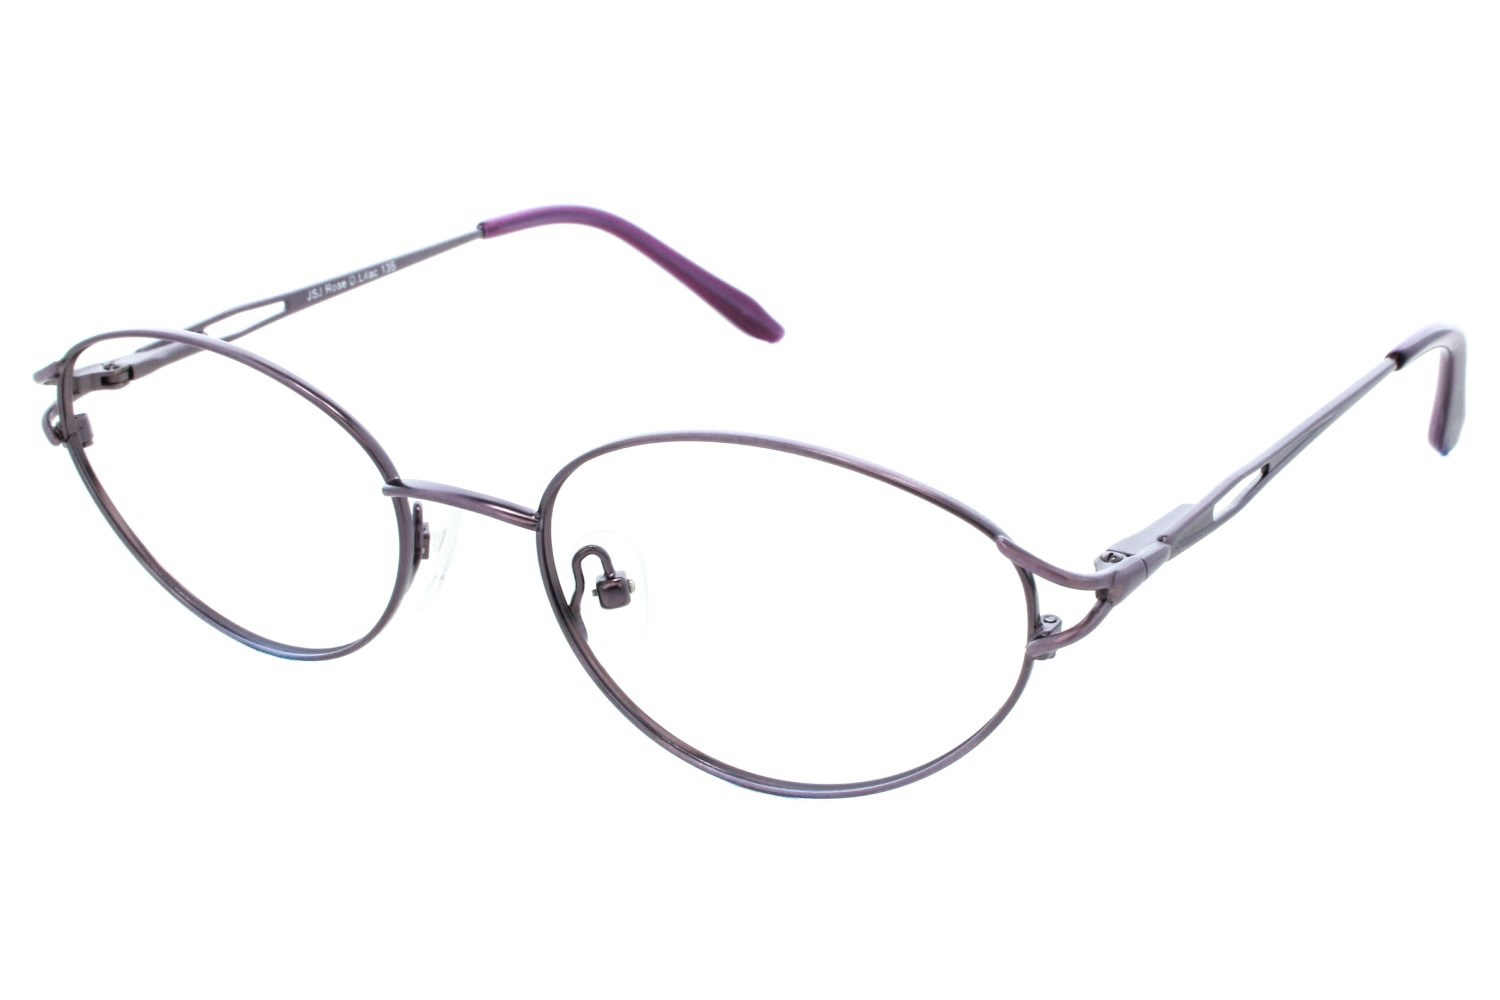 Judith St James JSJ Rose Prescription Eyeglasses Frames